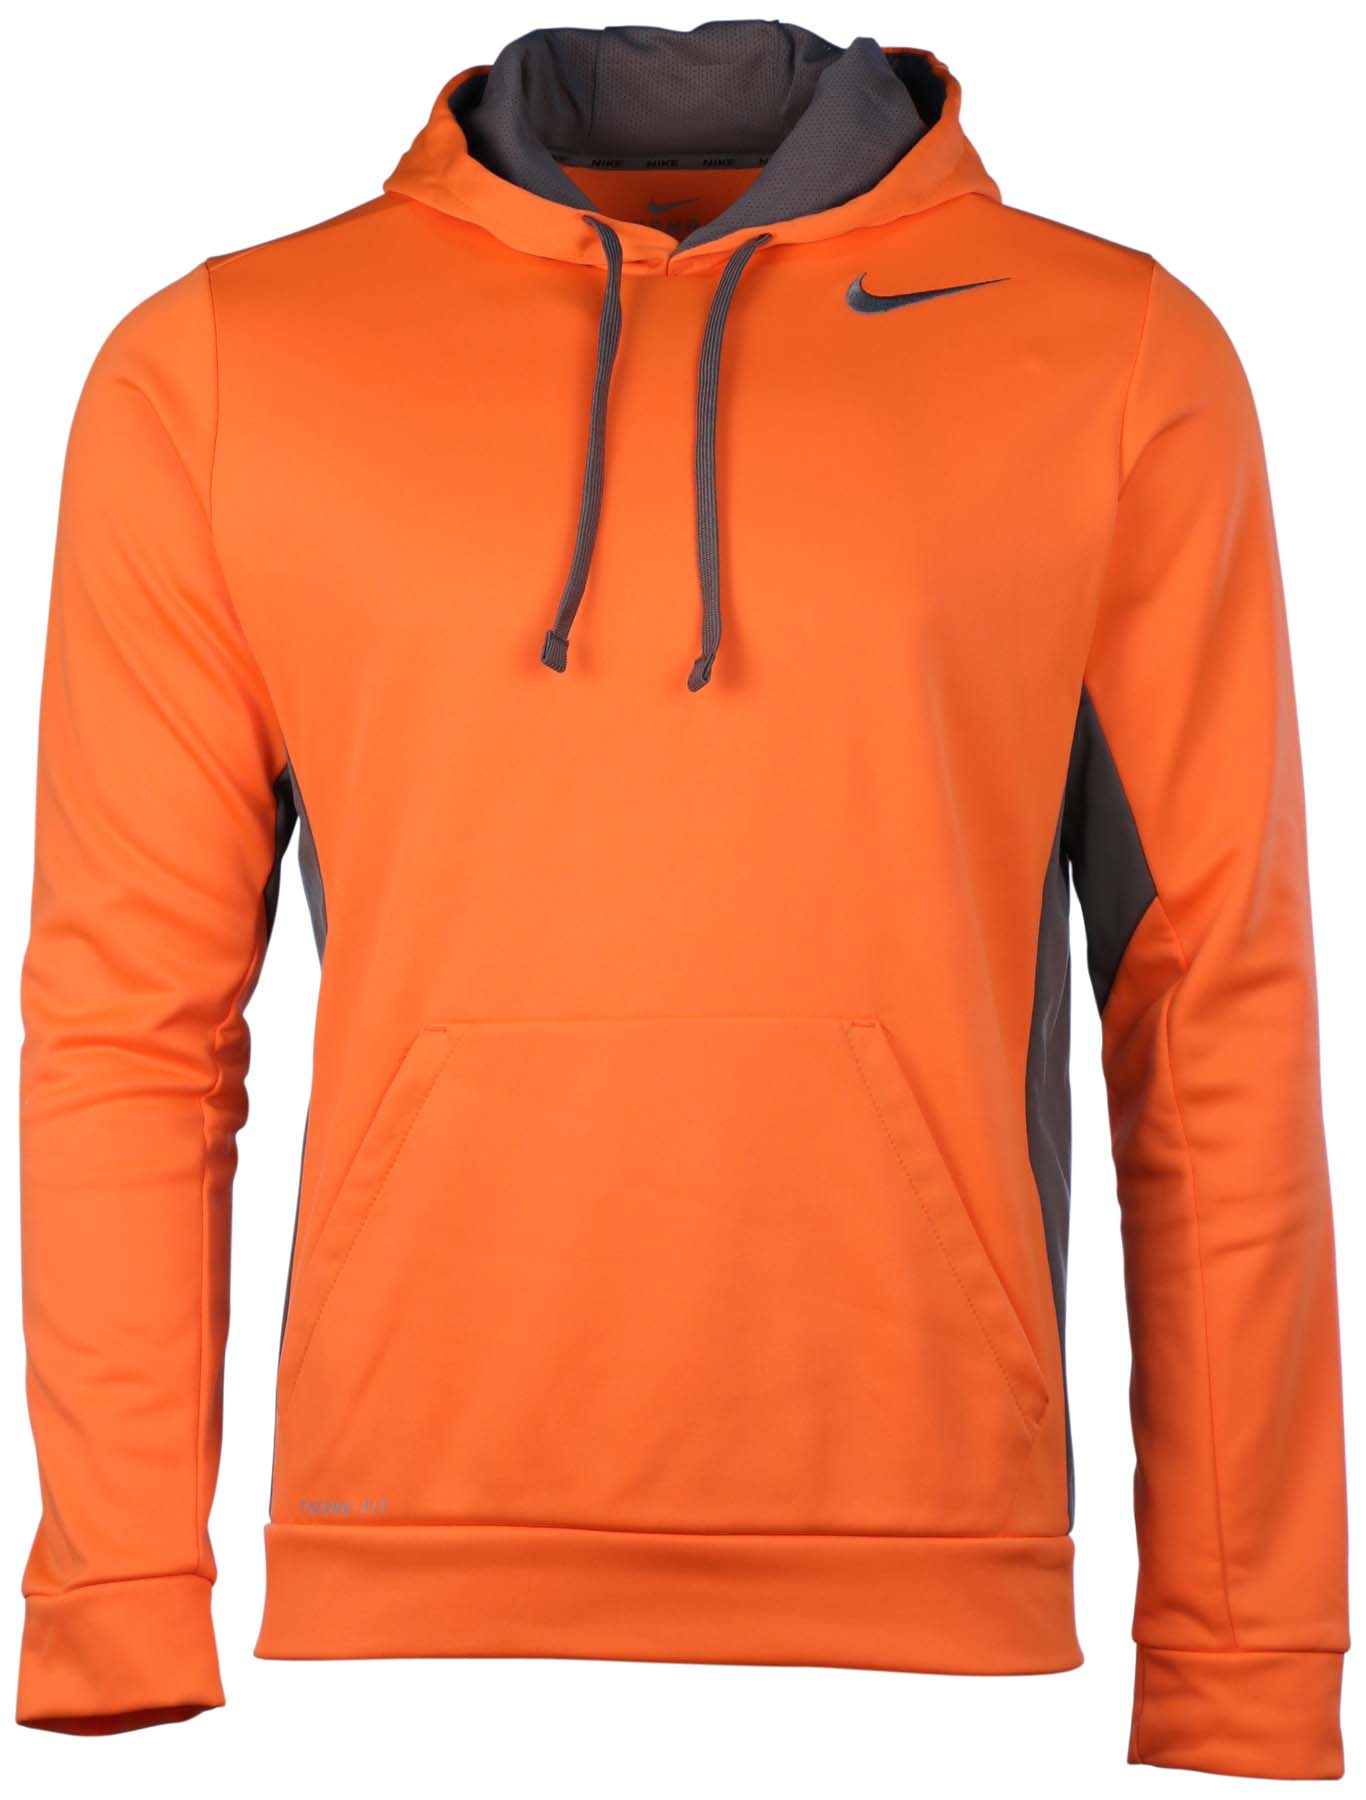 Pop See Ko 3.0 : Men's, Therma-Fit, Pullover, Training, Hoodie-Neon, Orange, Walmart.com